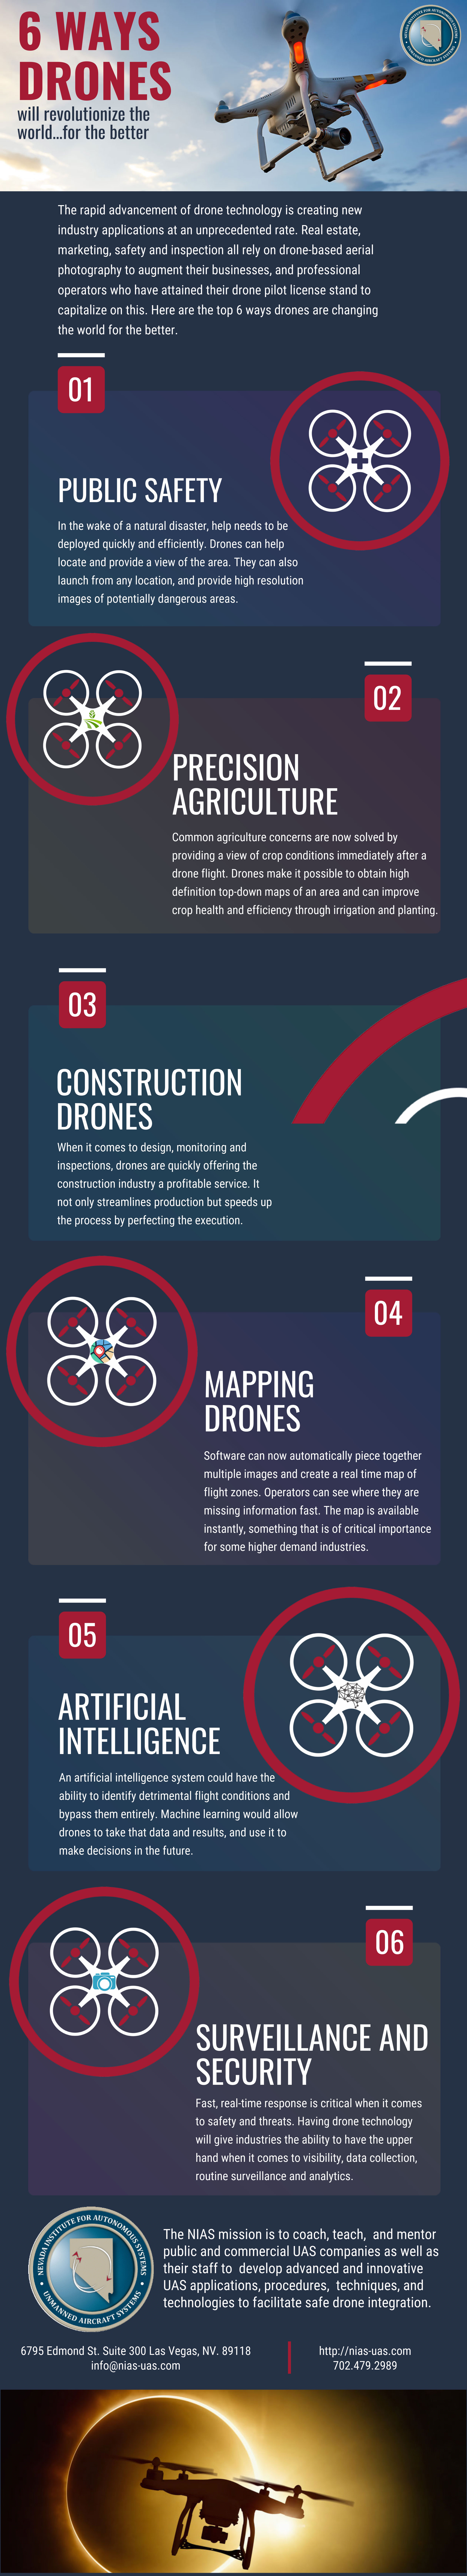 6-Ways-Drones-Will-Change-The-World